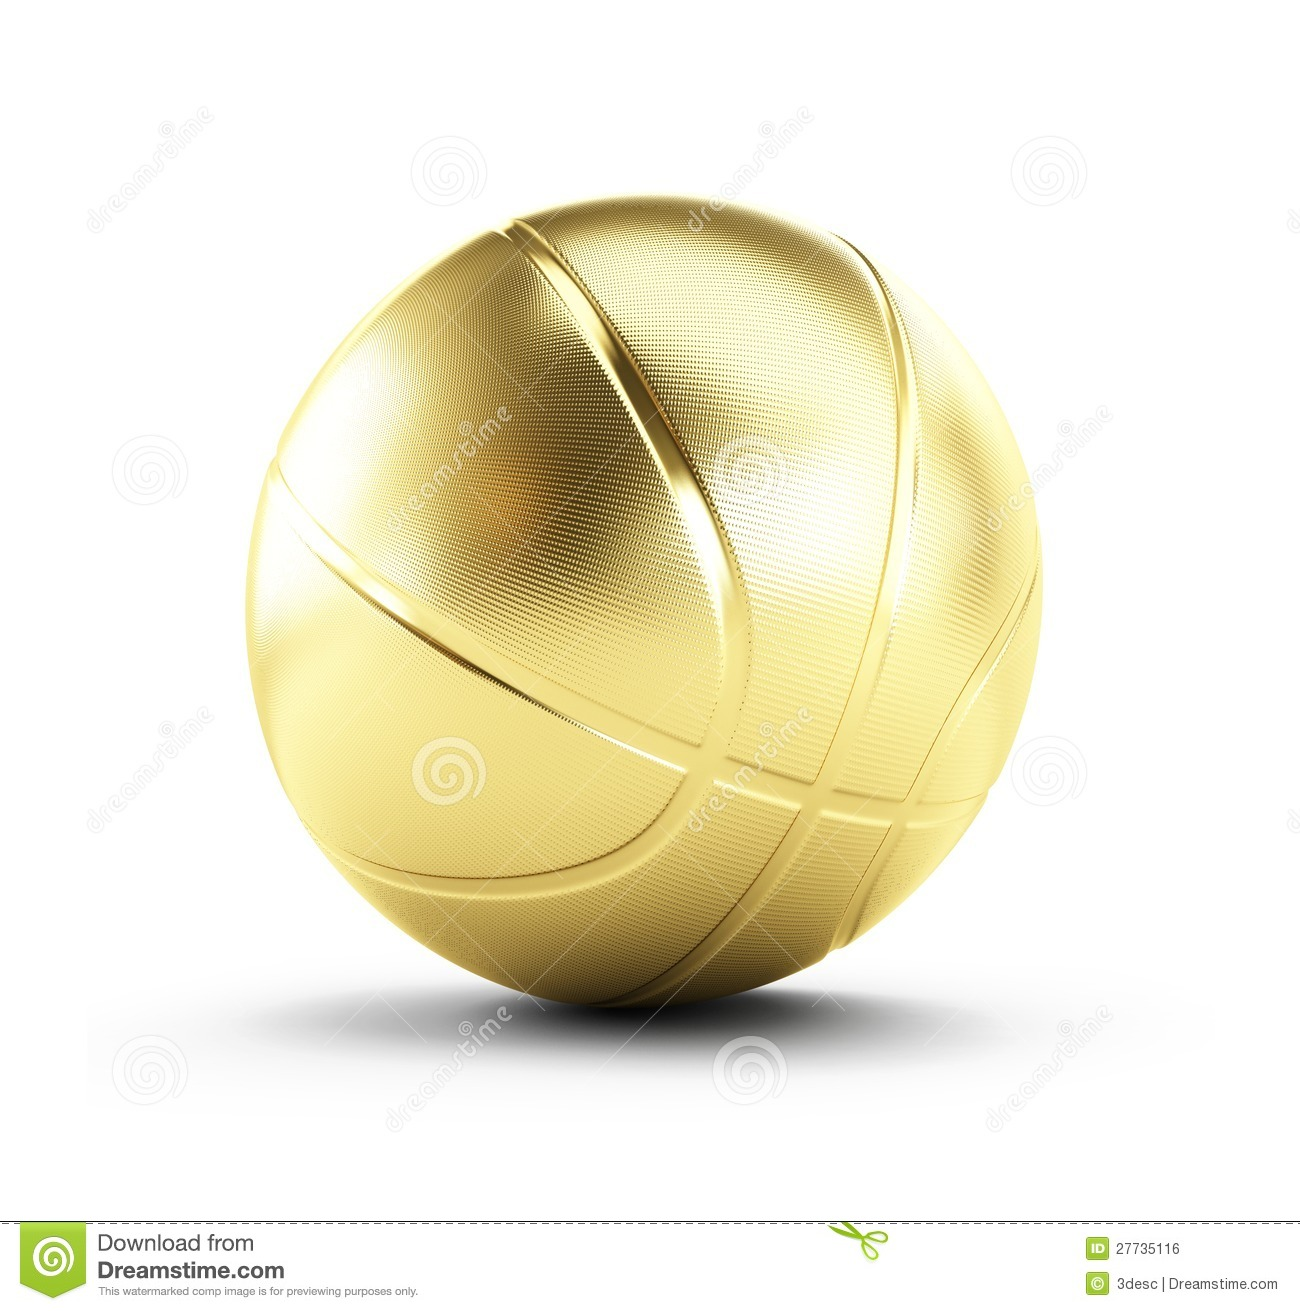 Gold Basketball Ball Royalty Free Stock Image - Image: 27735116